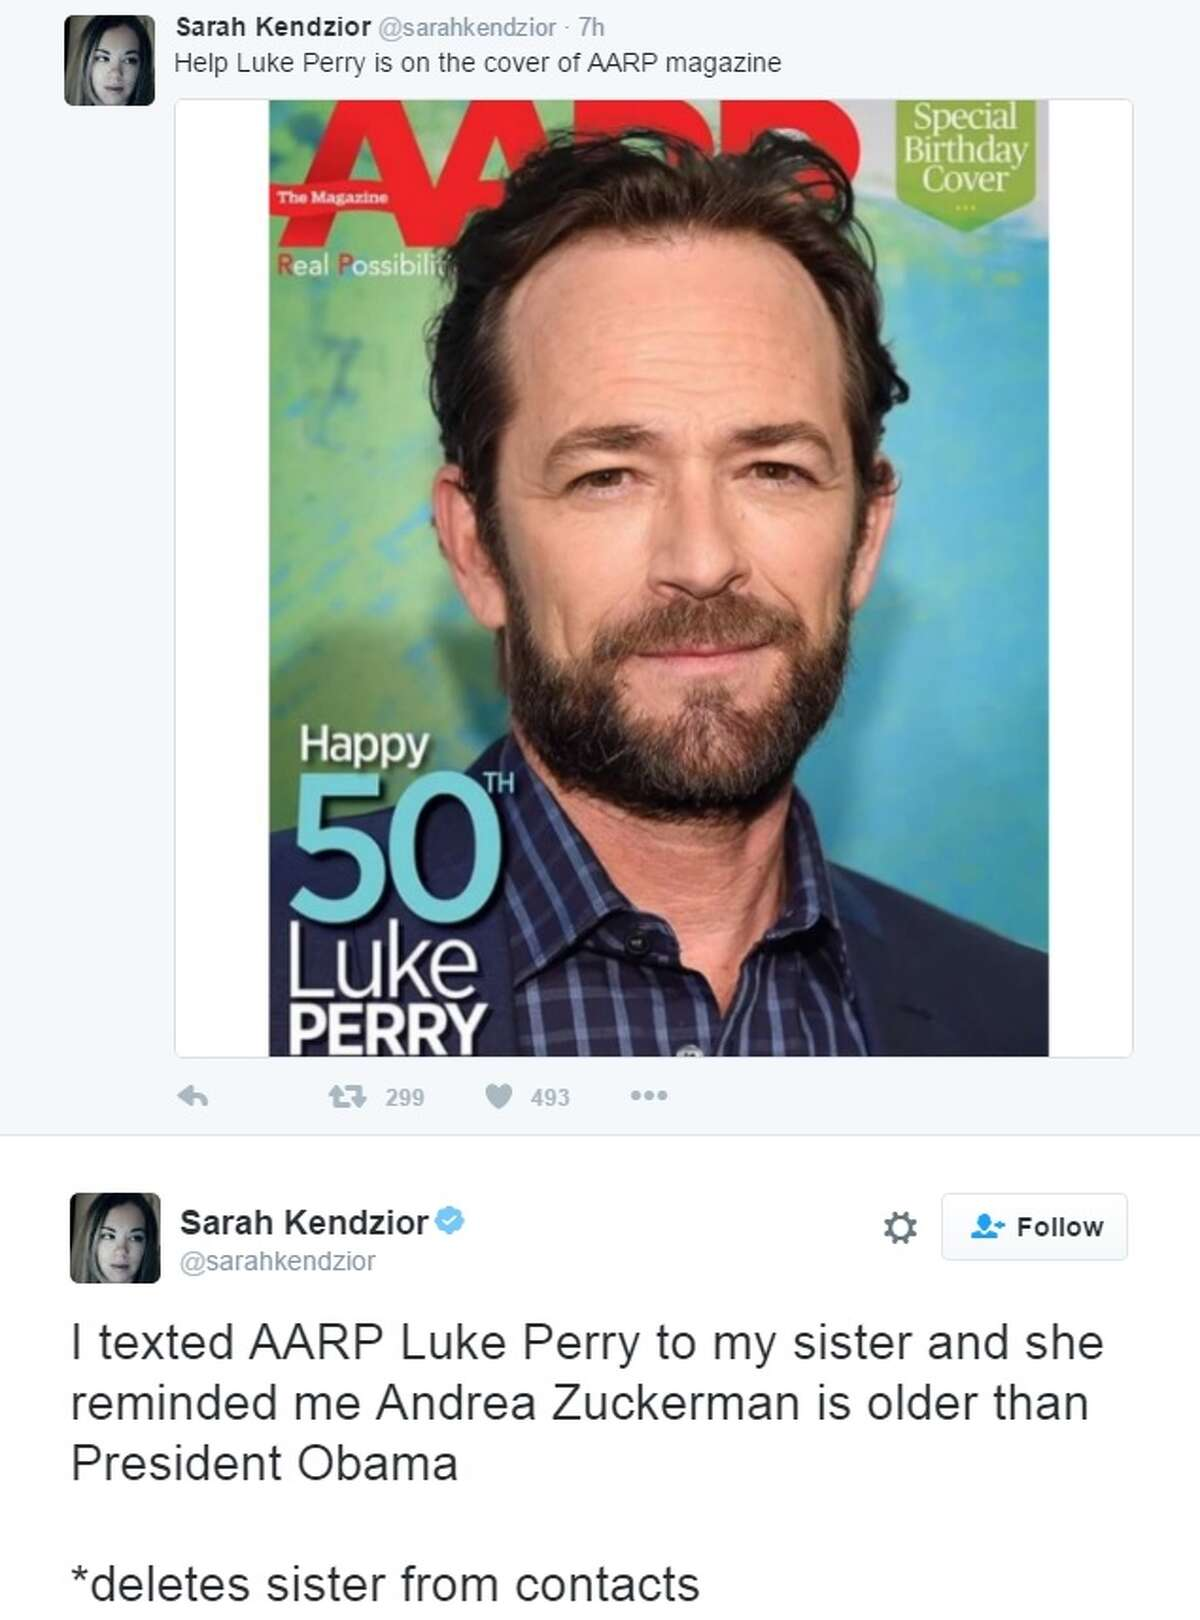 Twitter reactions to Luke Perry turning 50 and making the cover of ARRP.